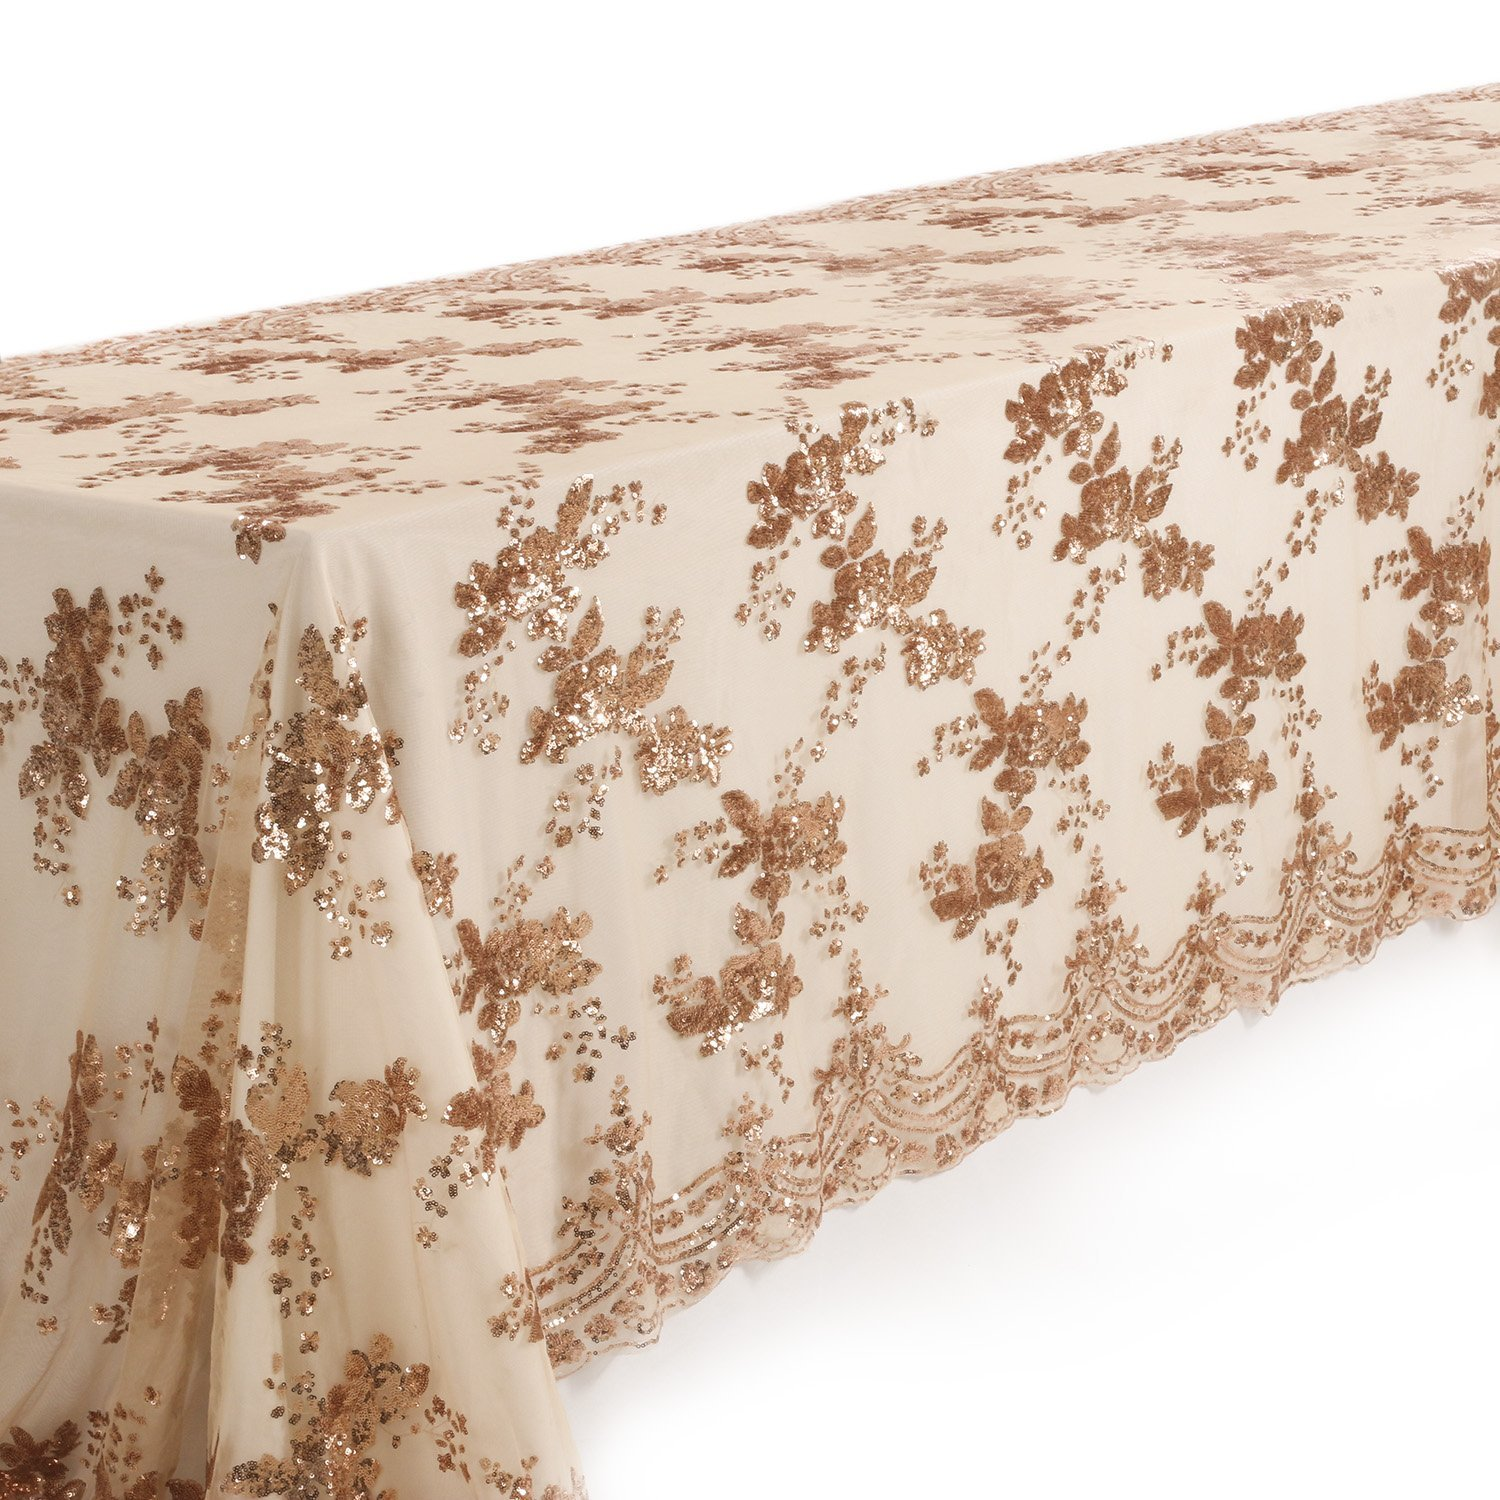 Crisky Rose Gold Embroidery Sequin Tablecloths for Weddings Table Decorations, 3D Emvroidery Flower, Anniversary Party Cake Tablecloth Bridal Shower Baby Shower Welcome Table Decoration, 53'' x 118''